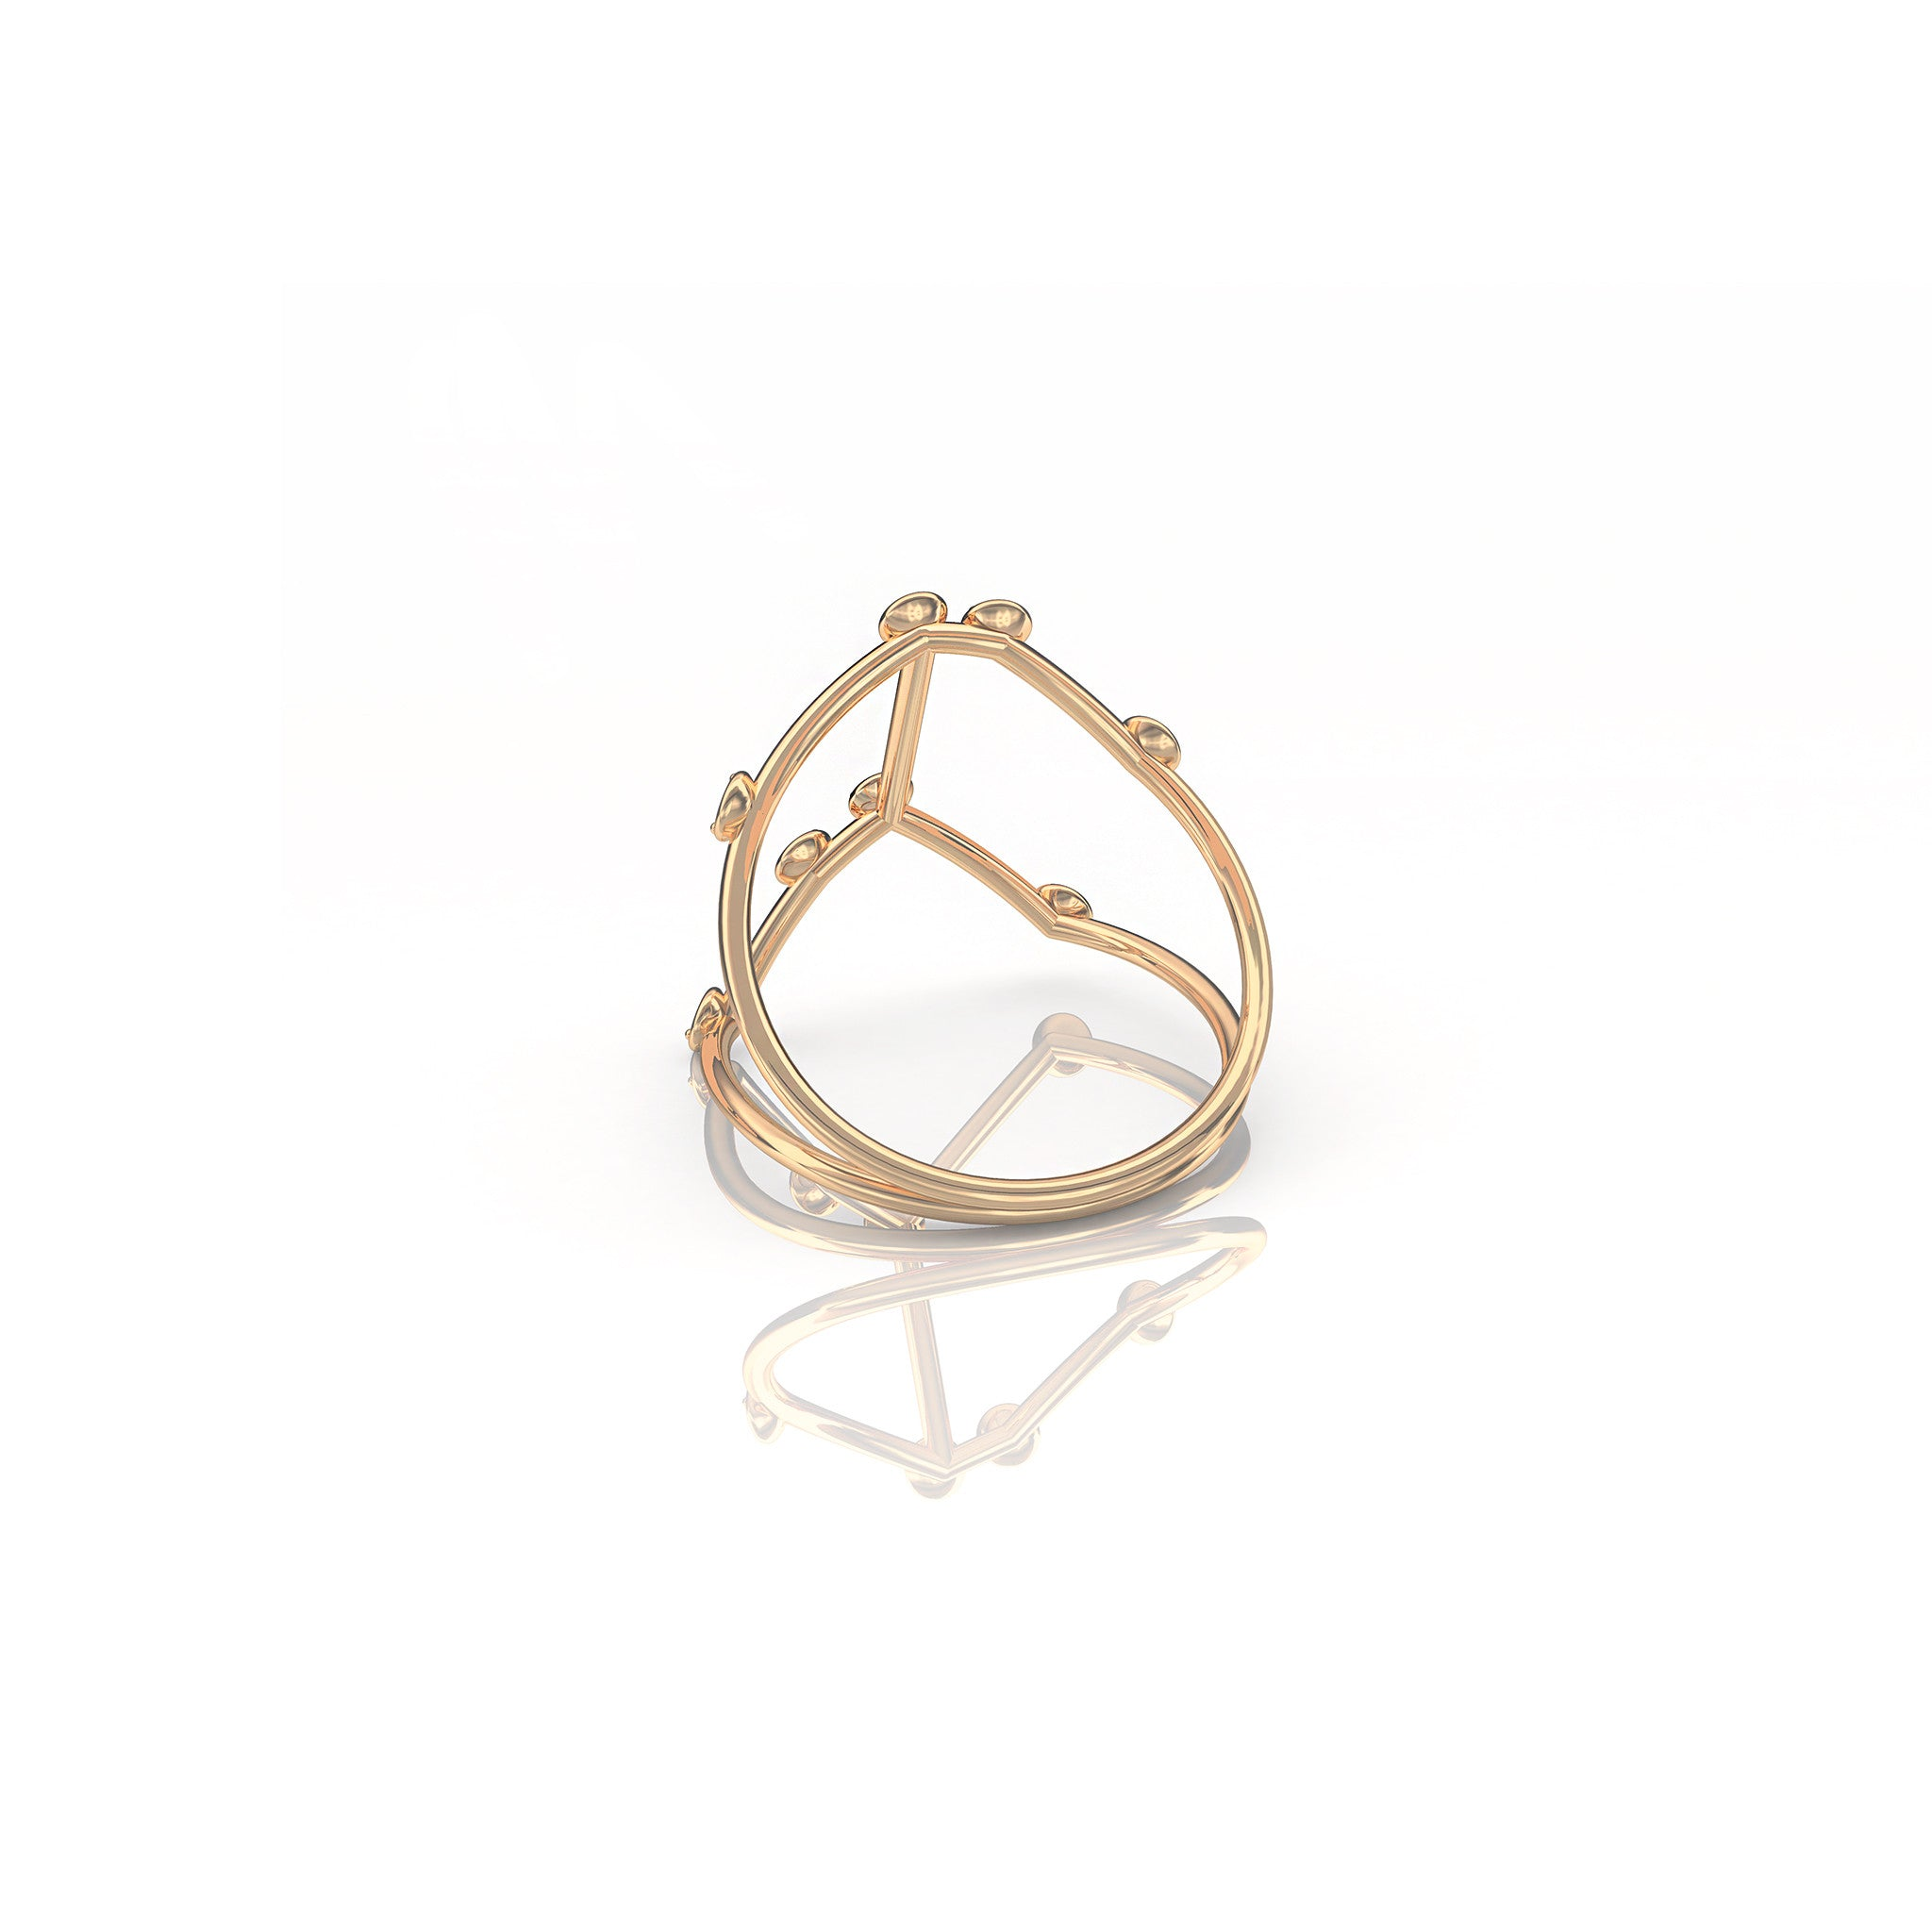 Cancer Constellation Ring